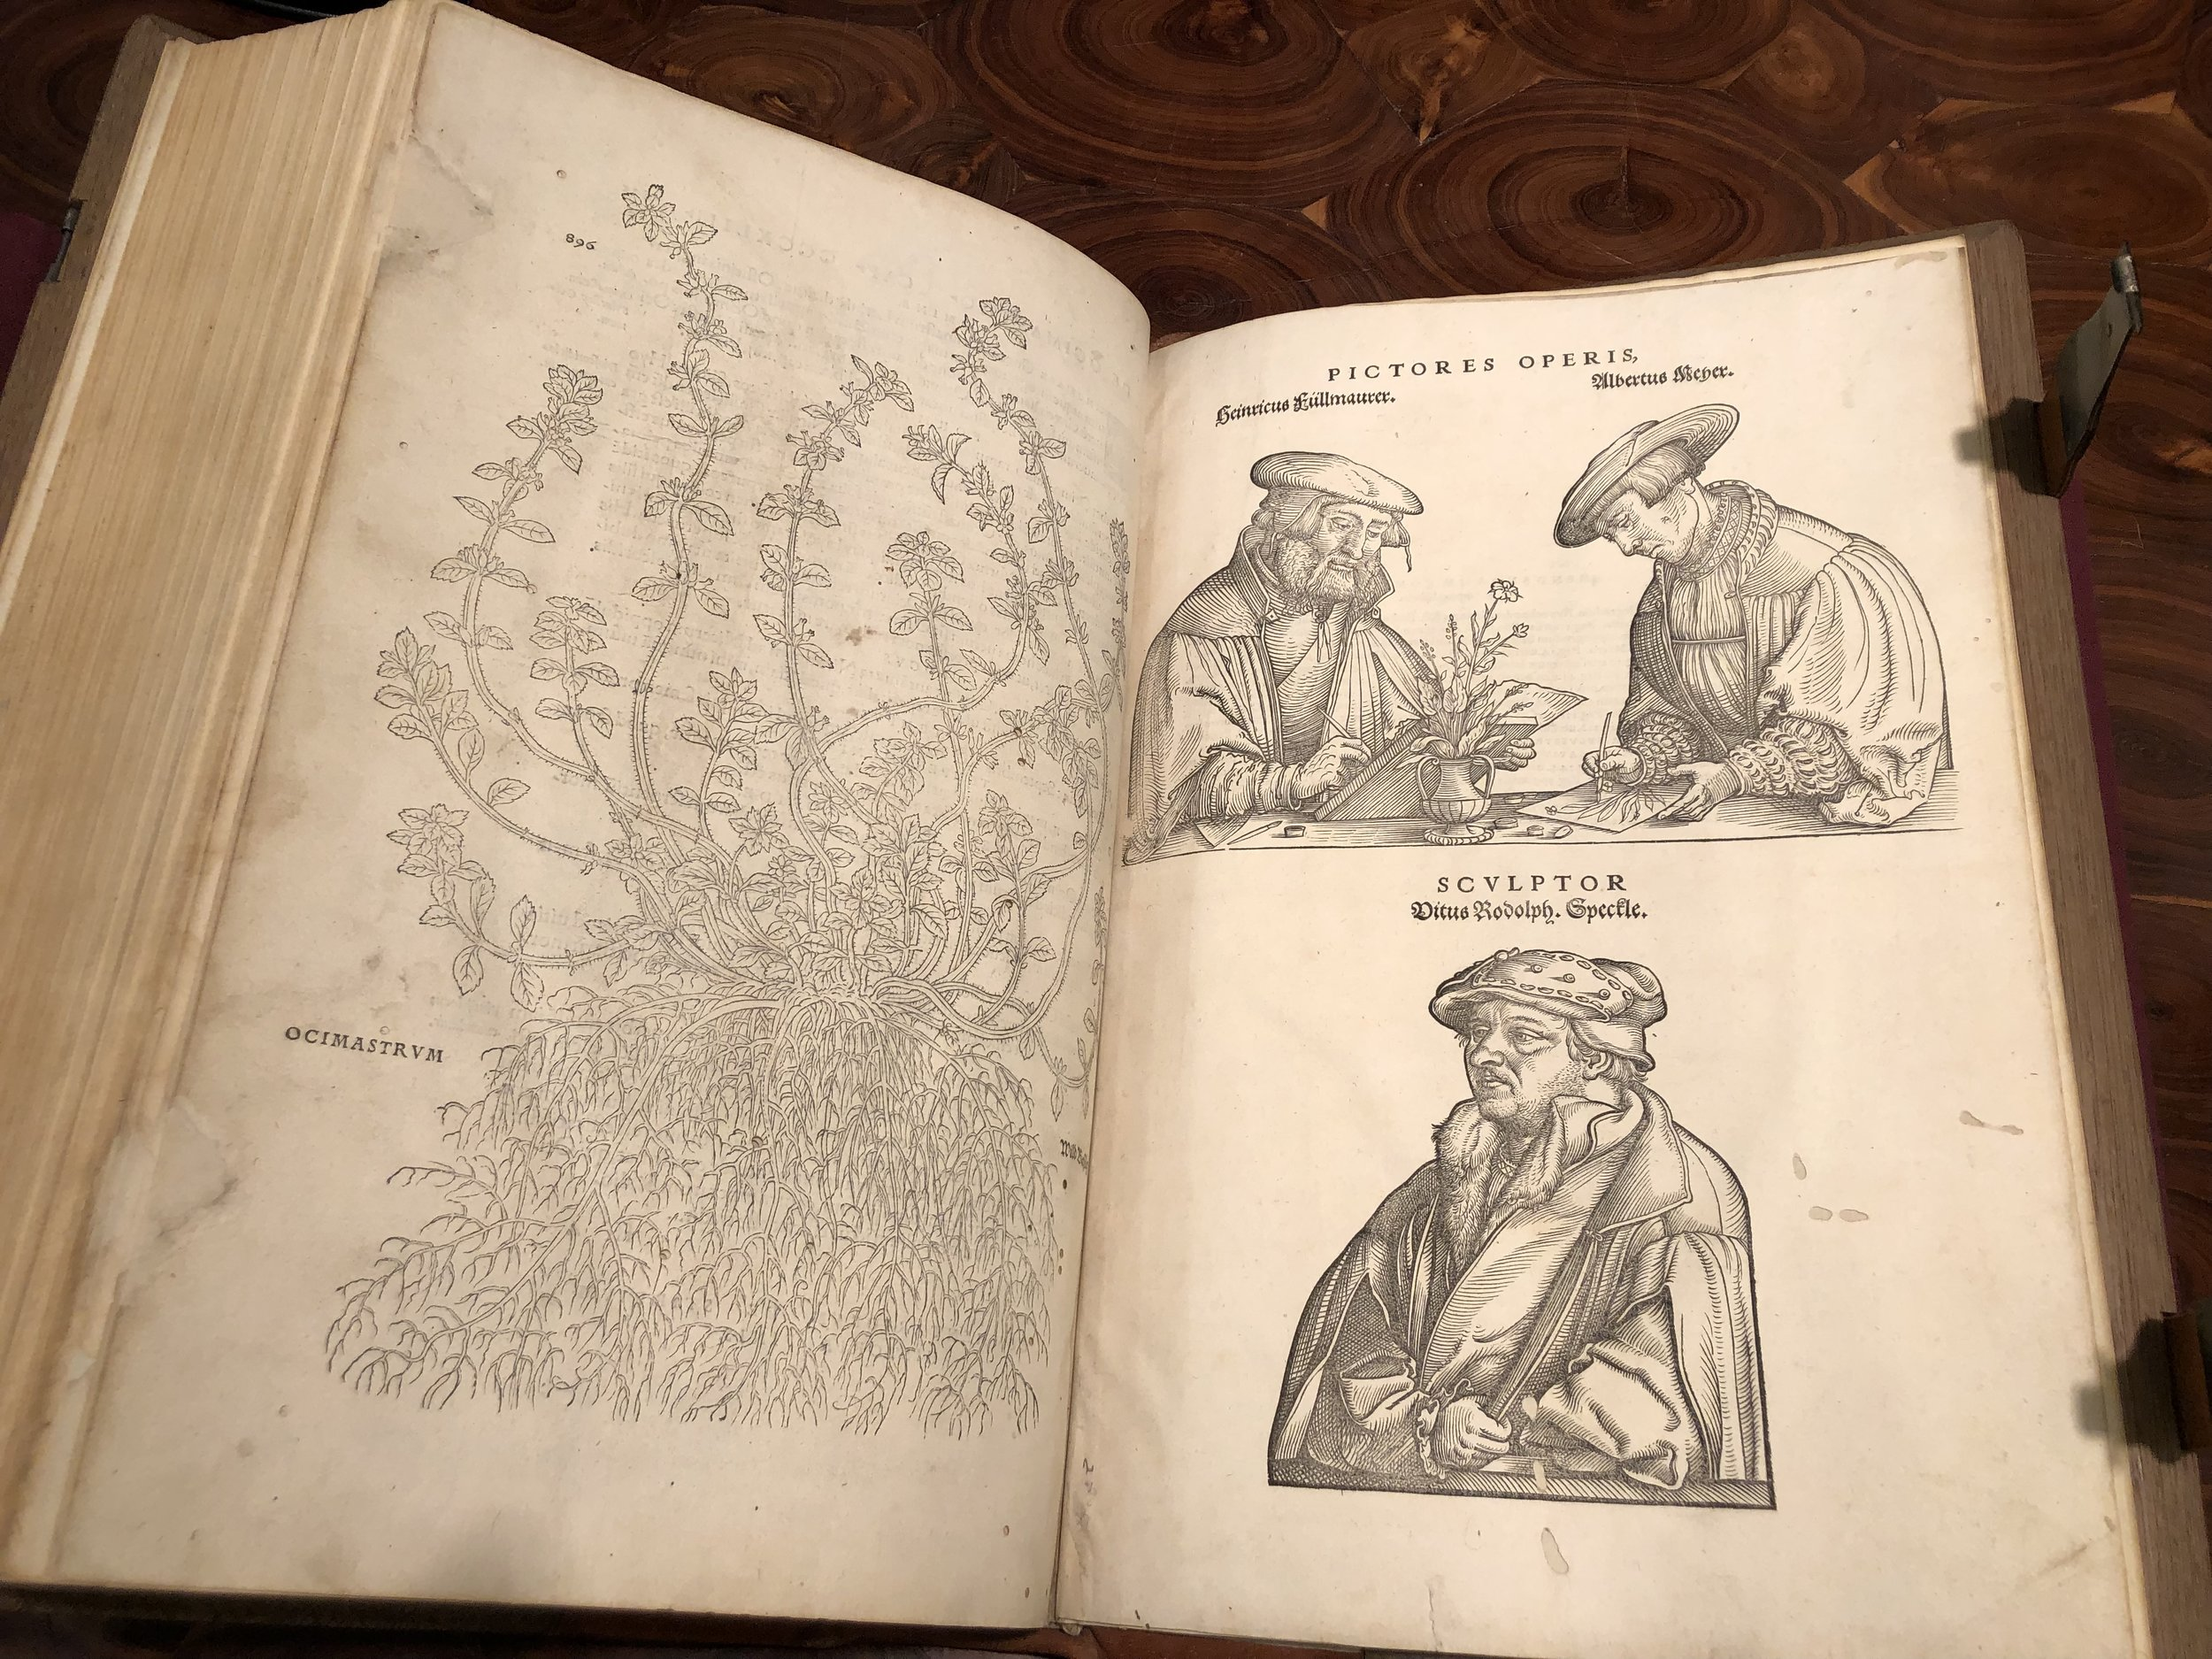 A book about Botany